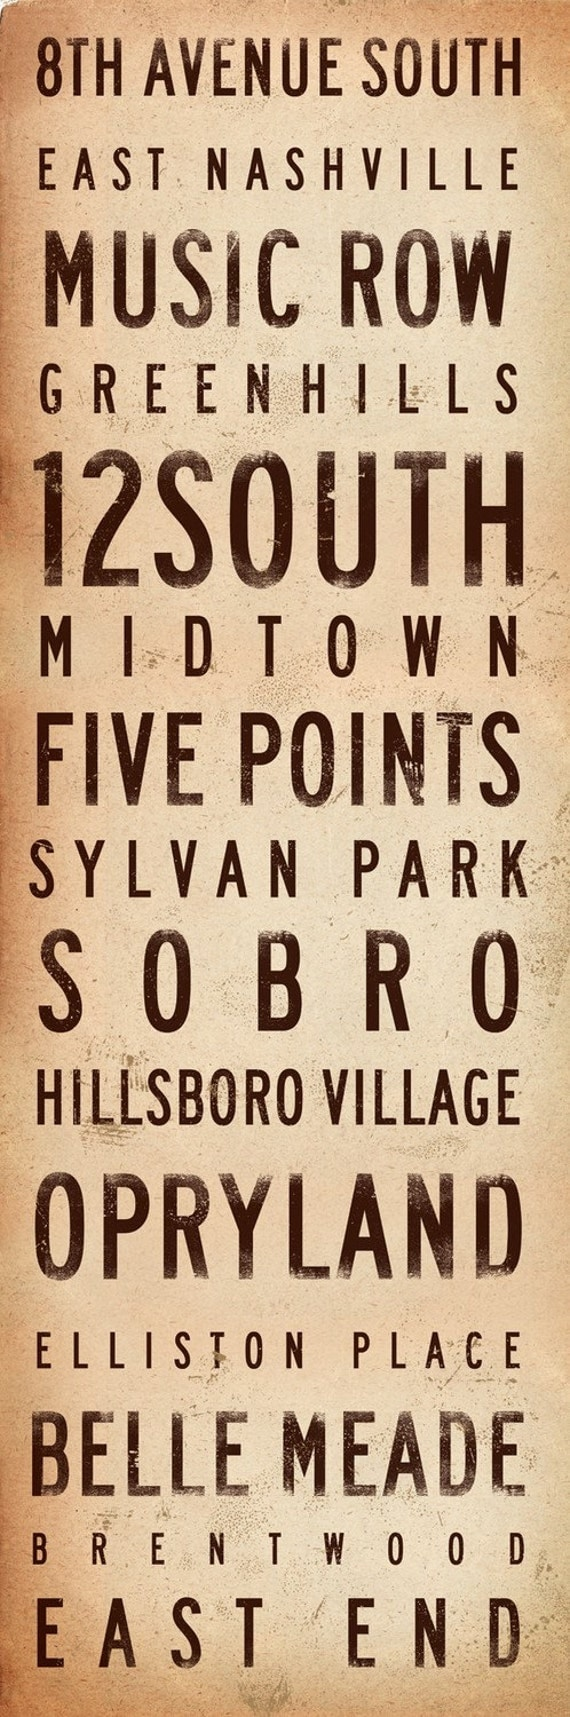 Nashville neighborhoods typography graphic art on canvas 12 x 36 x 1.5 by gemini studio